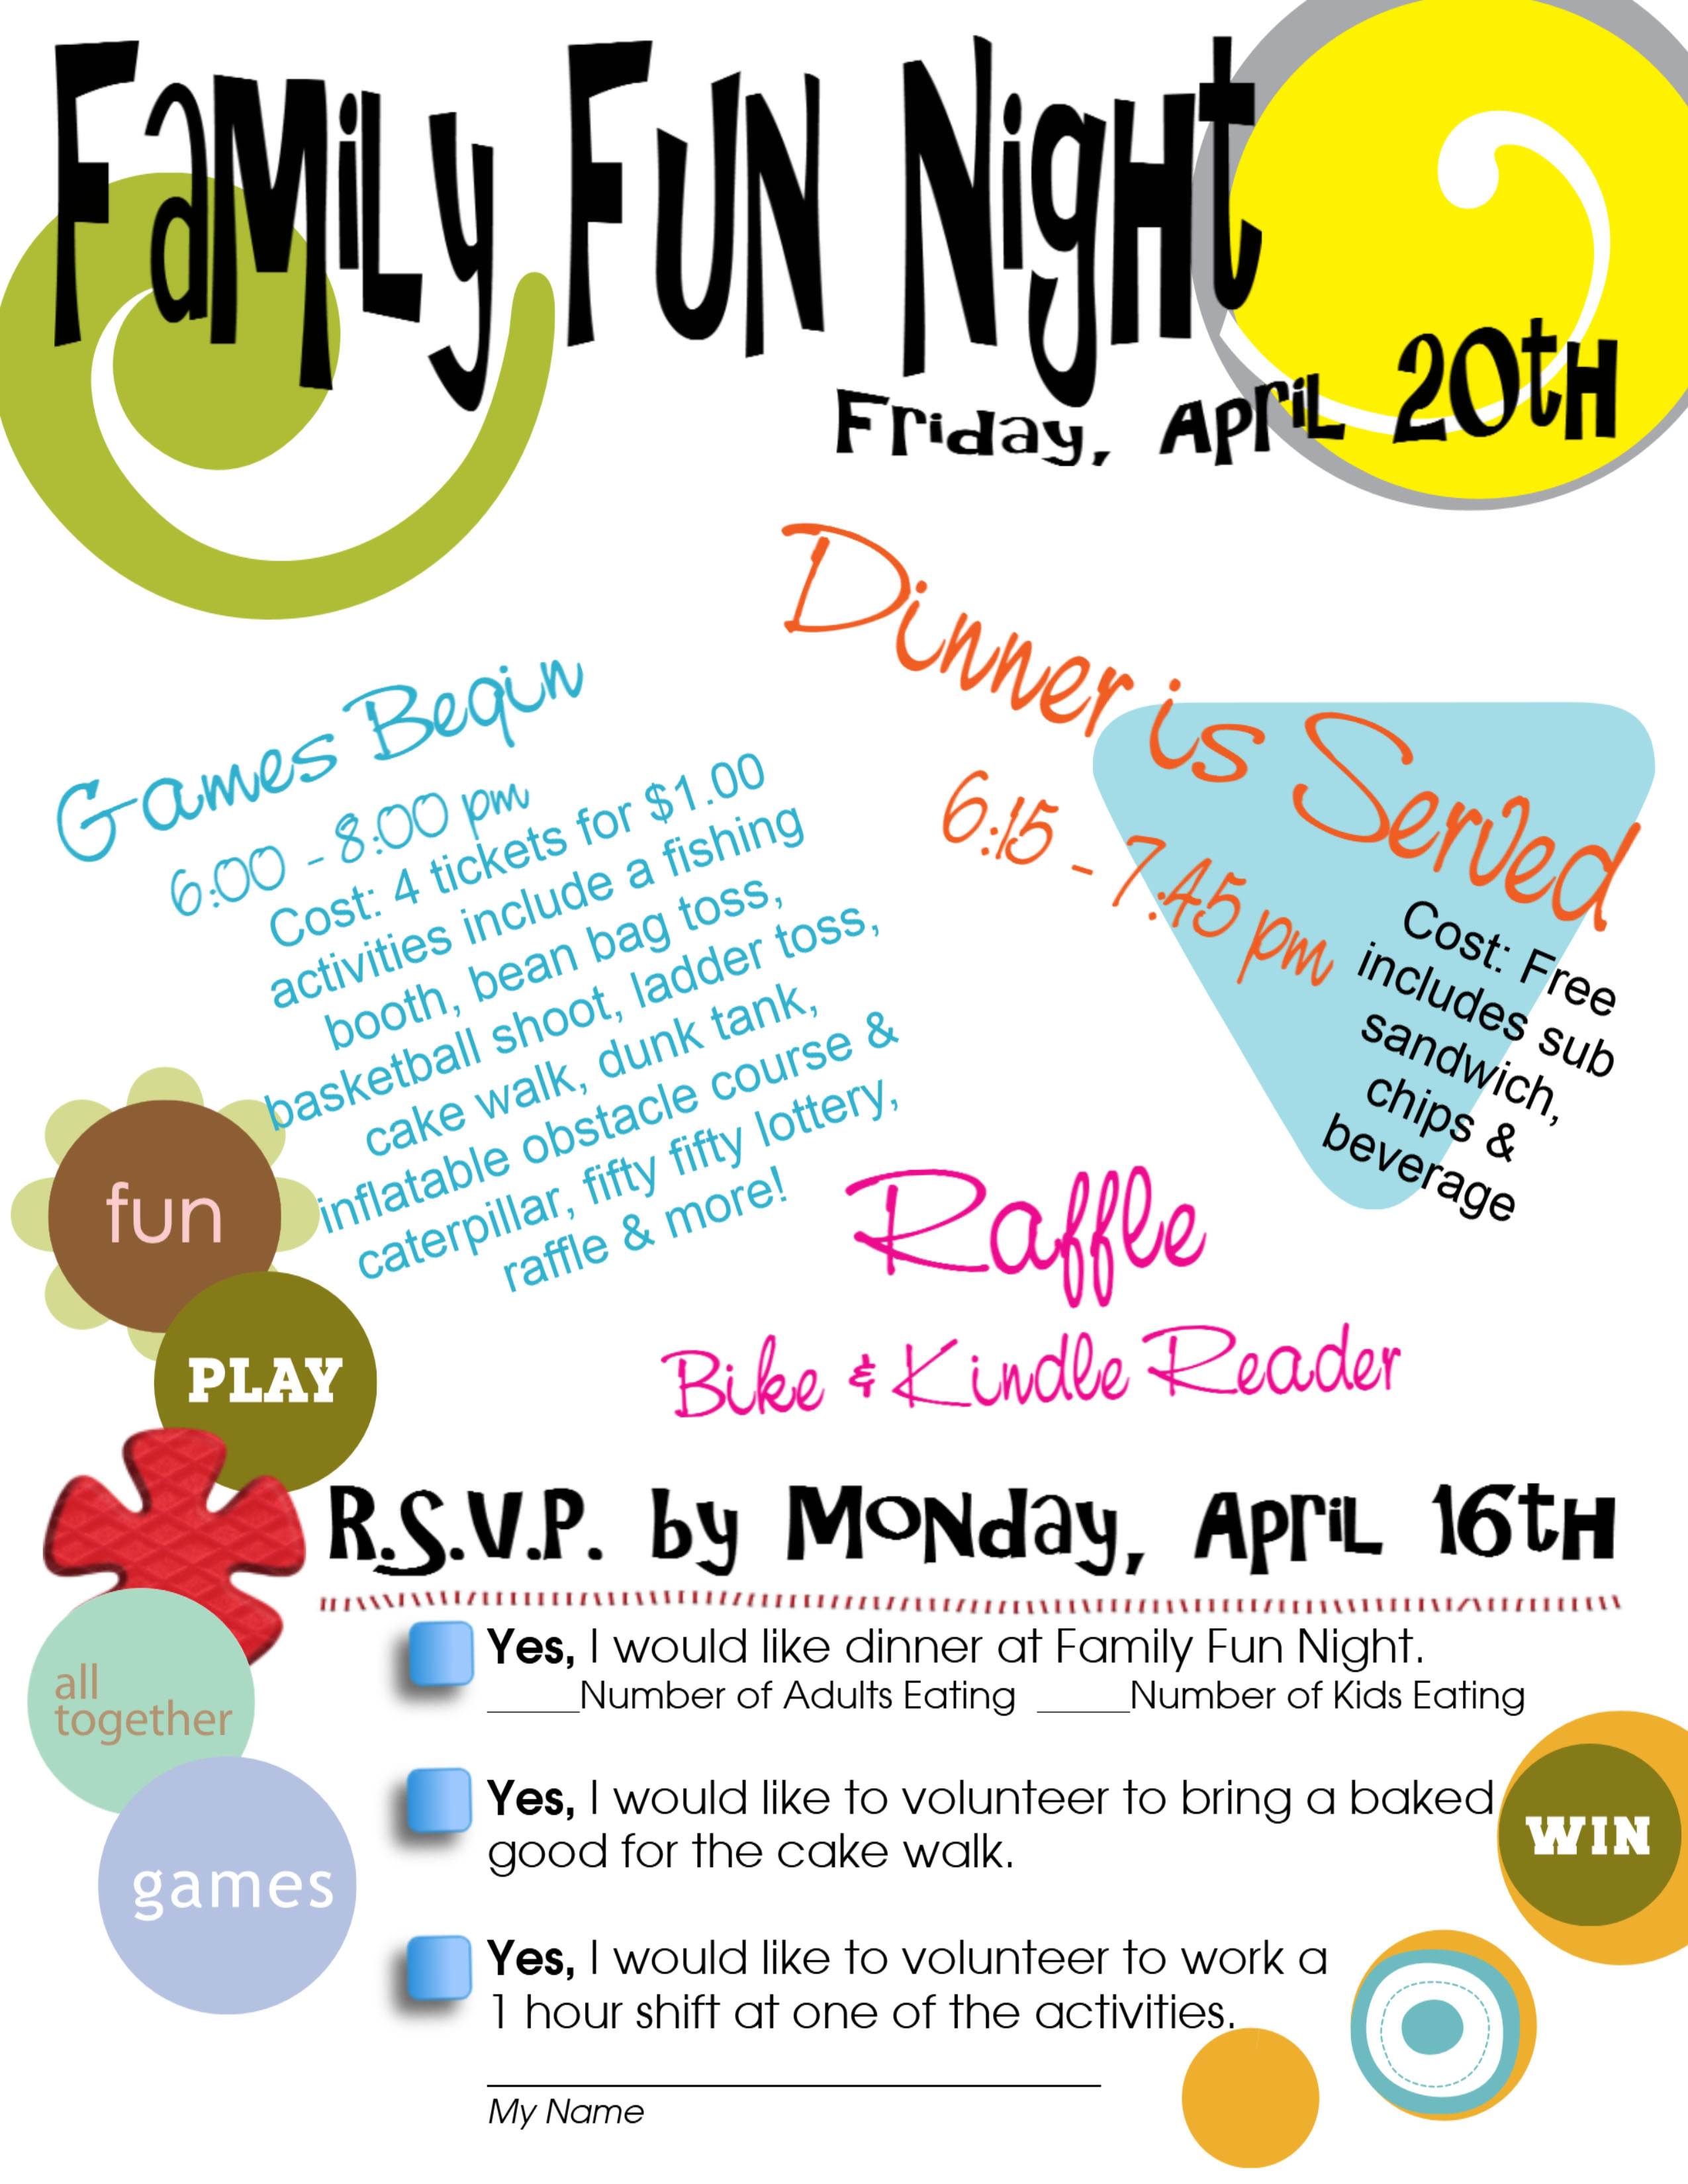 Family Fun Night April 20th